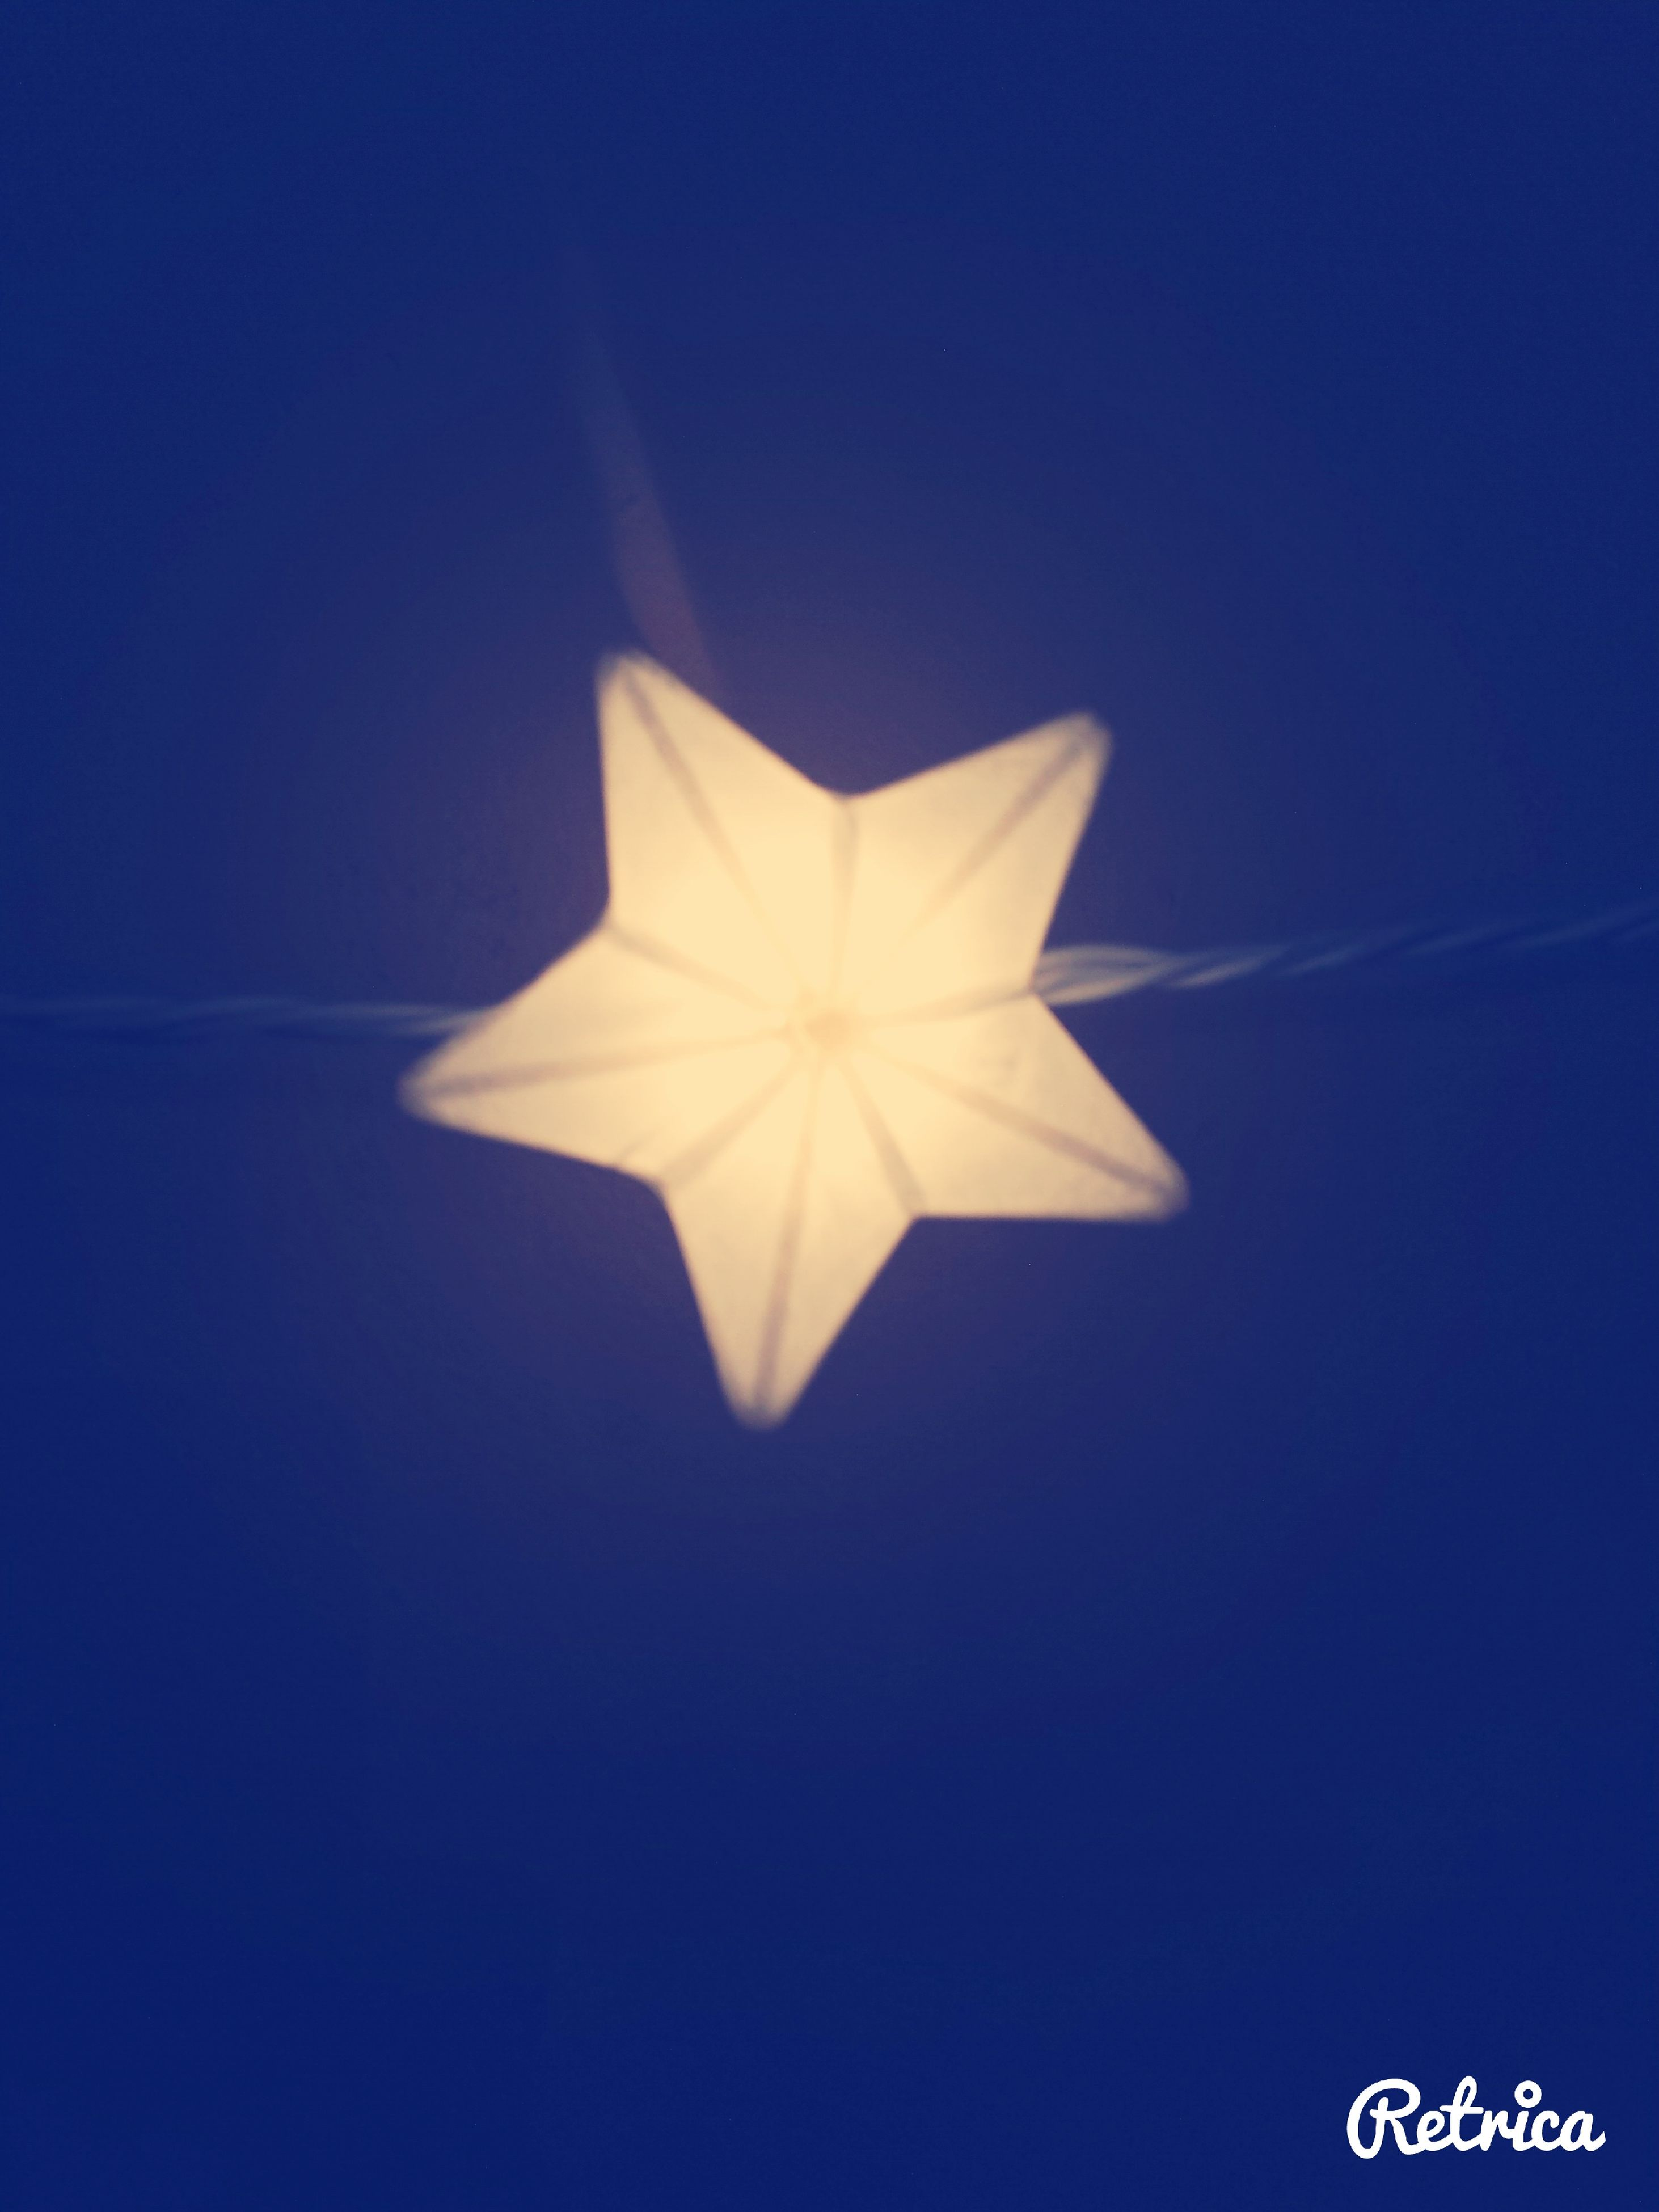 blue, copy space, studio shot, creativity, art and craft, star shape, art, indoors, close-up, decoration, still life, single object, low angle view, white color, clear sky, no people, pattern, design, hanging, paper